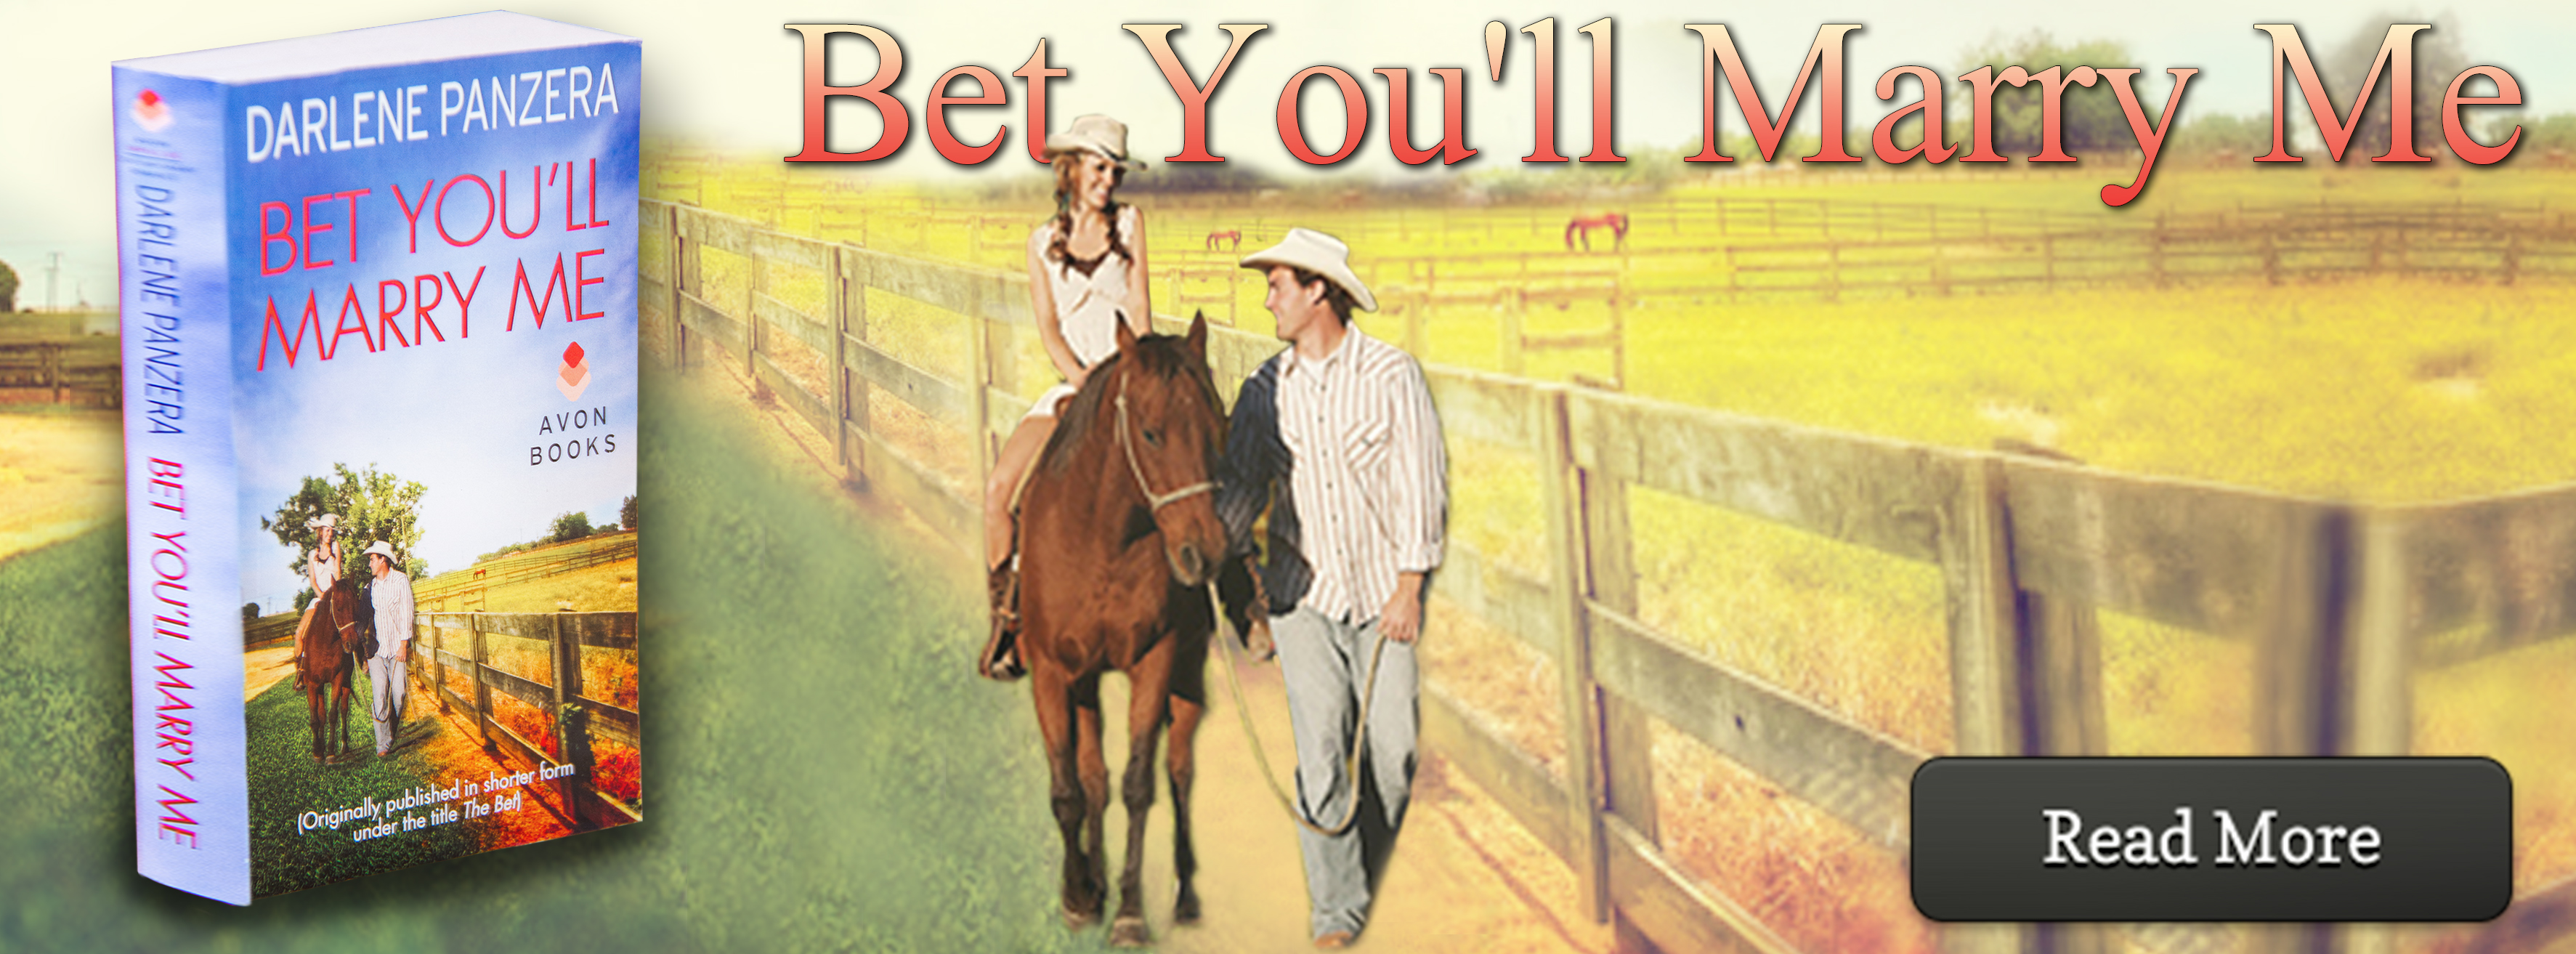 Bet-Youll-Marry-Me-Contemporary-Cowboy-Romance